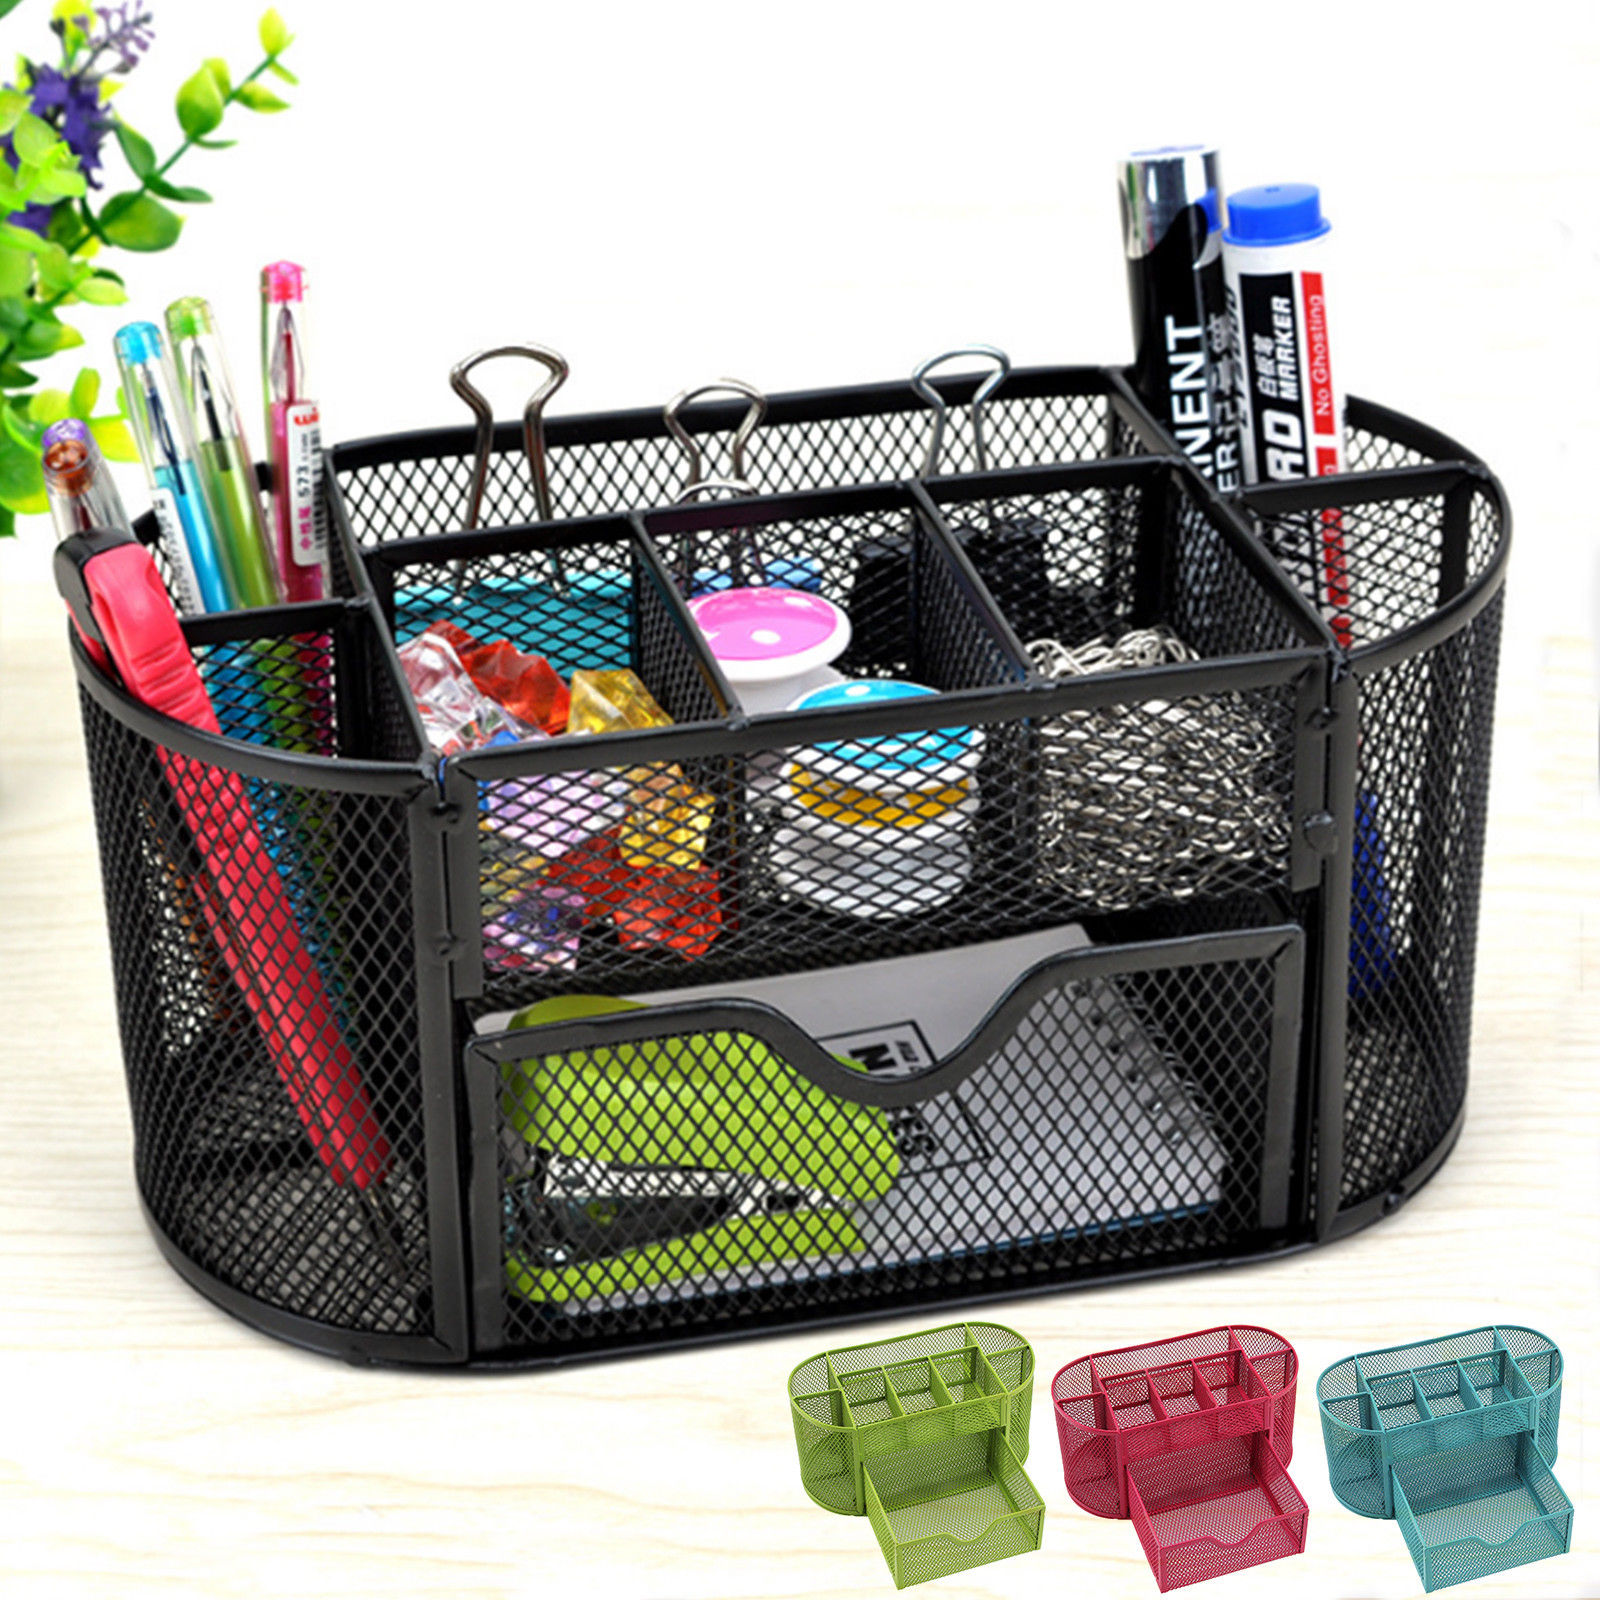 Hot Metal Wire Office Home Mesh Desk Organizer Stationary Tidy Trays Holder Pen